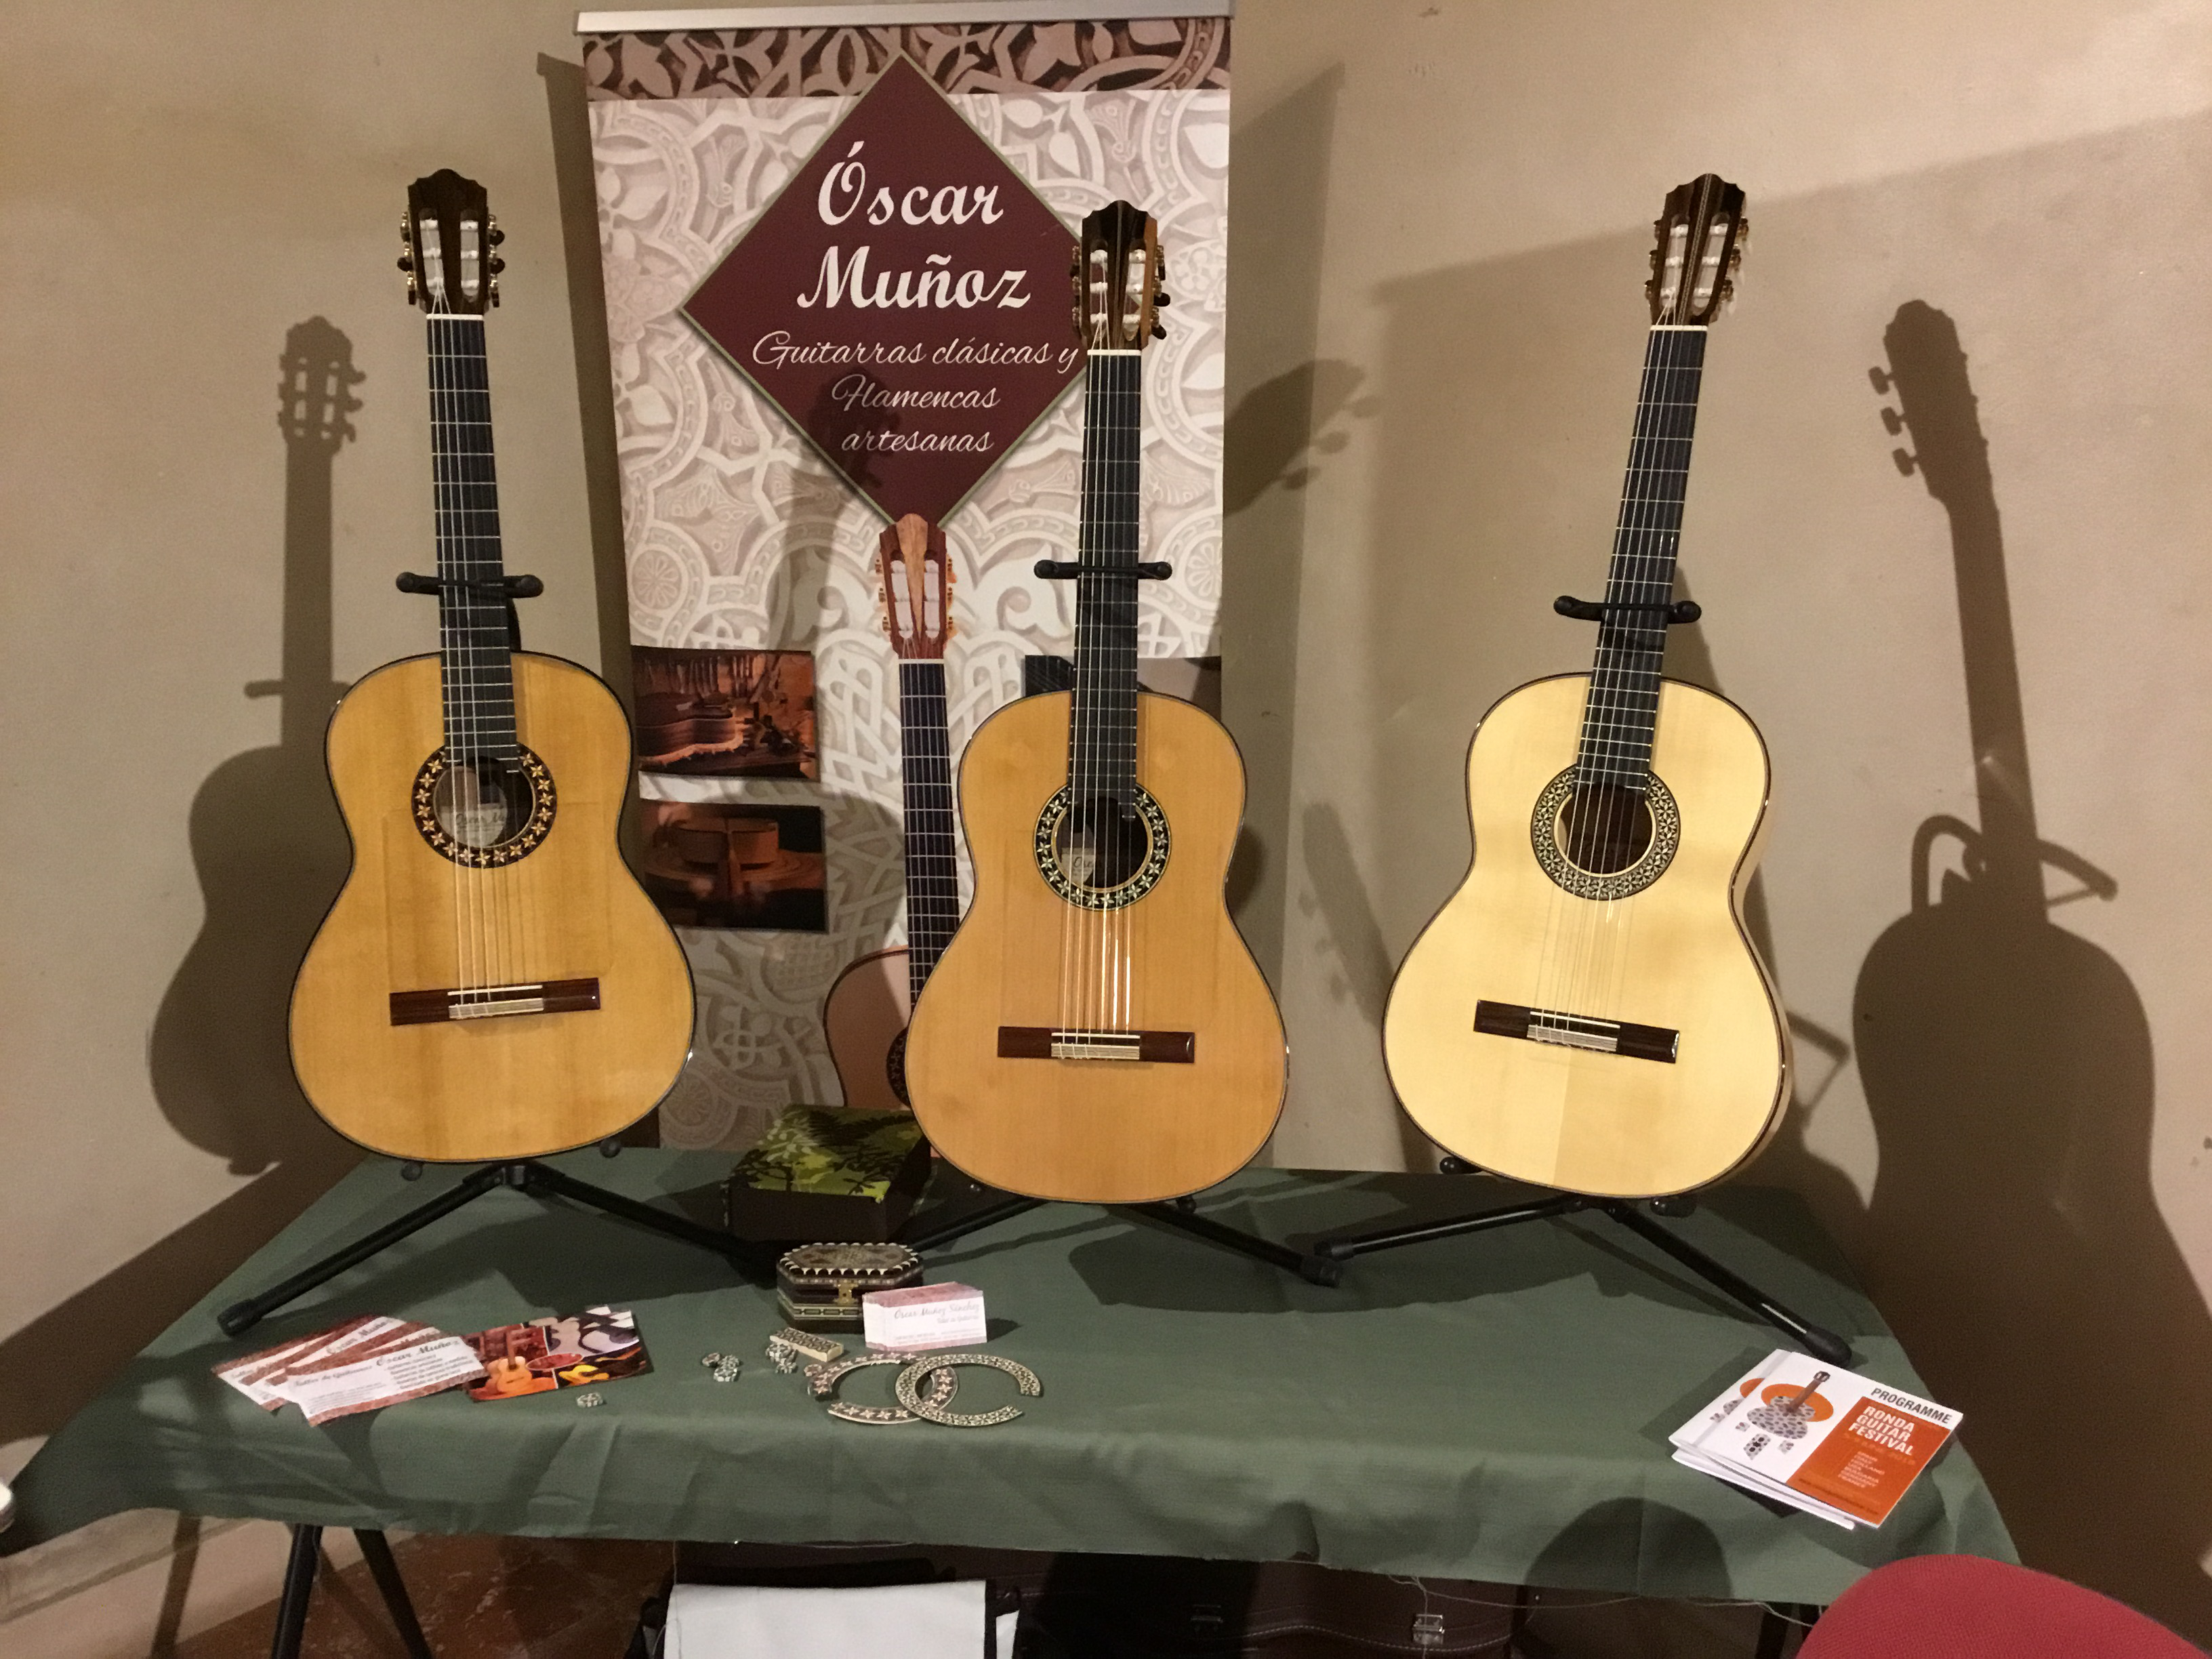 The Ronda Guitar Festival of 2019